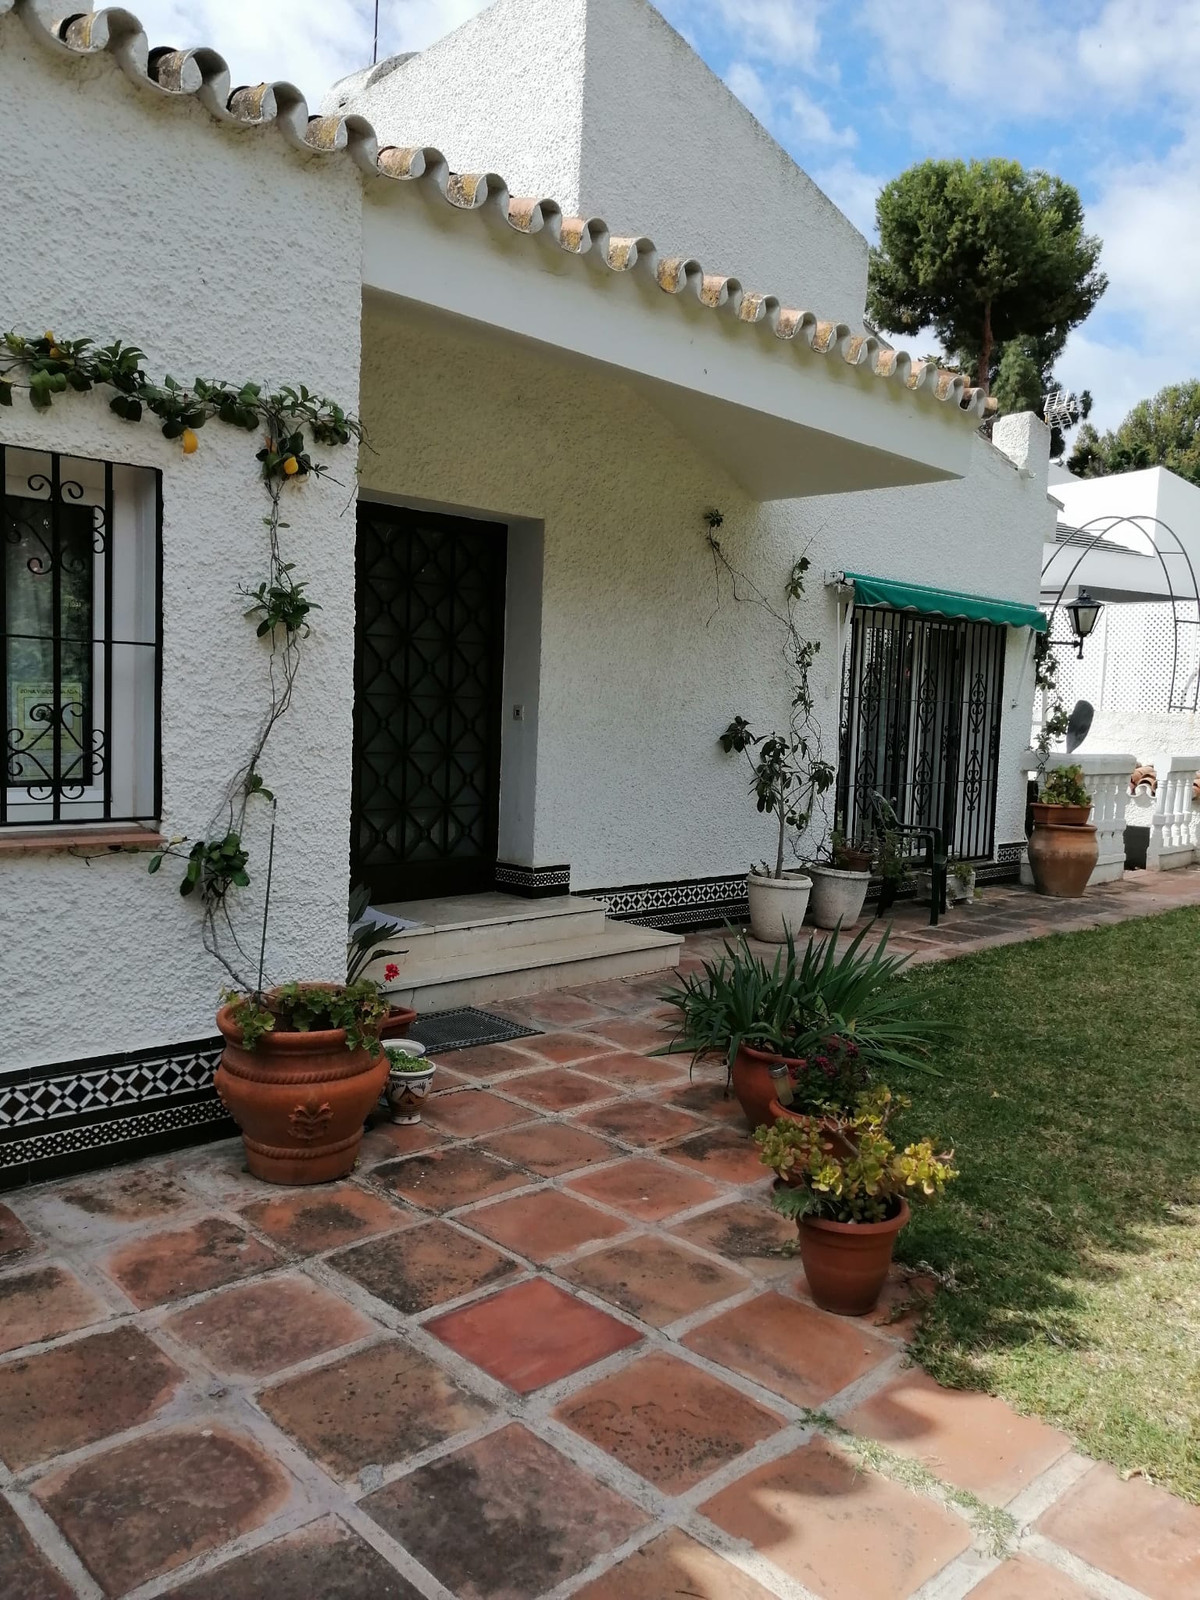 Excellent independent villa in Malaga capital  House 300 meters from the beach in El Candado, in the,Spain